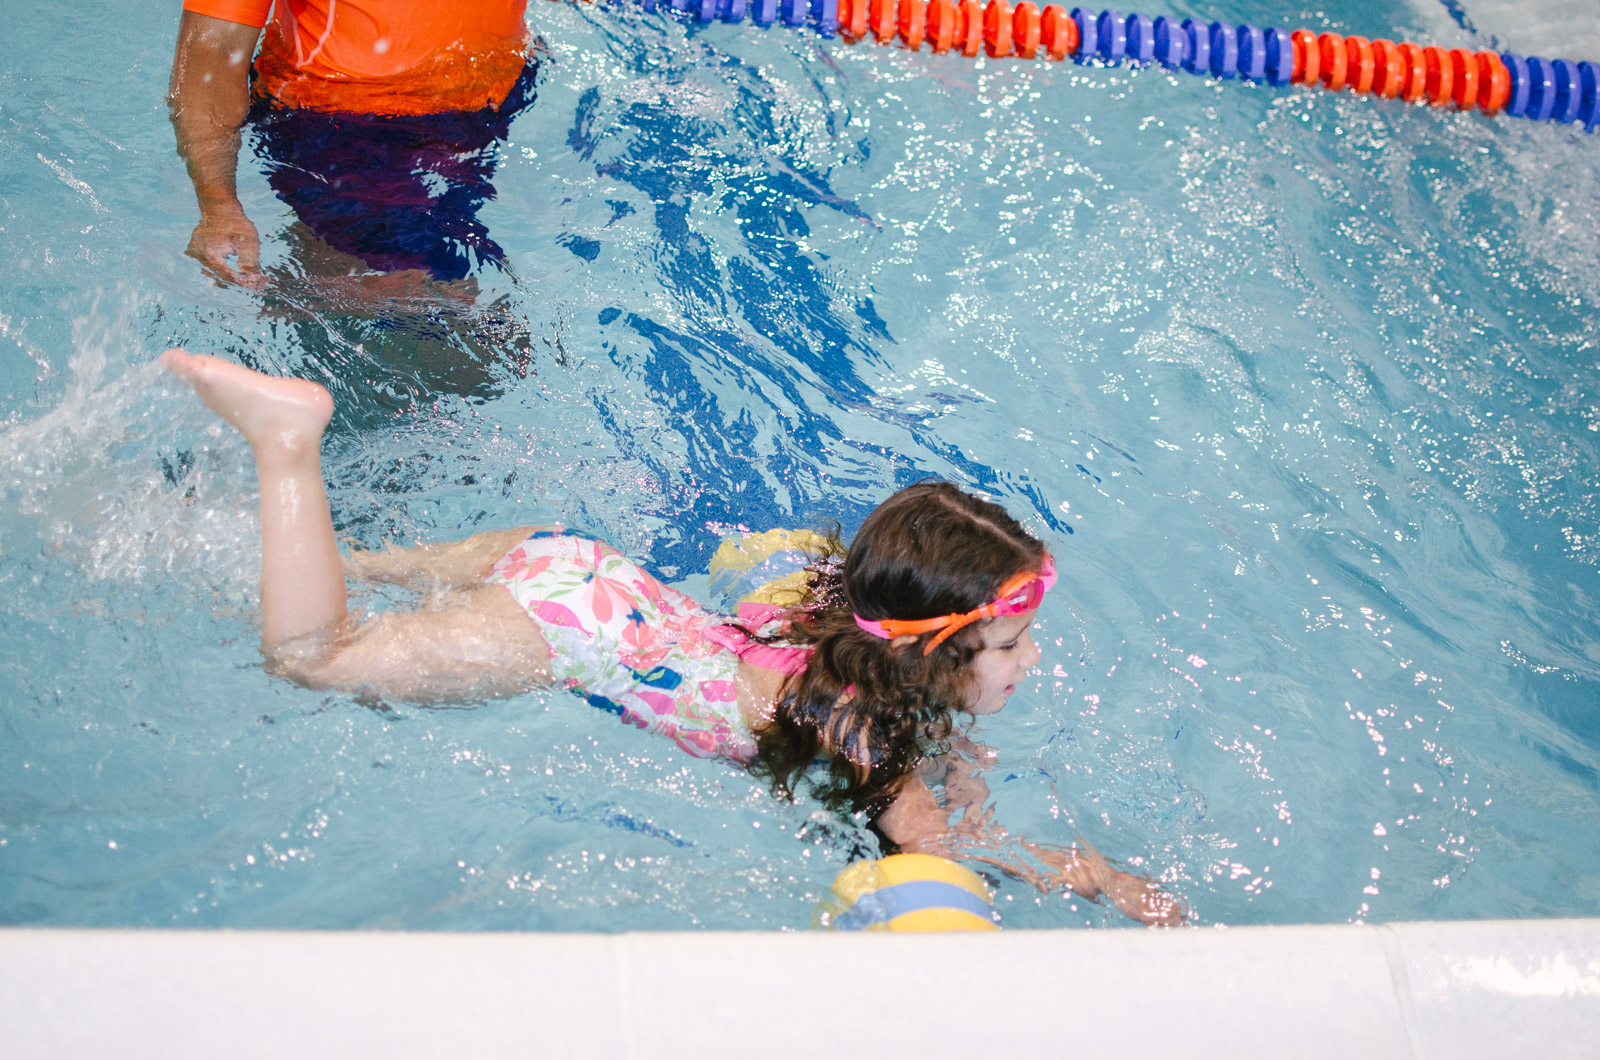 toddler swim lessons Richmond Virginia - my review of Goldfish swim school RVA | bylaurenm.com